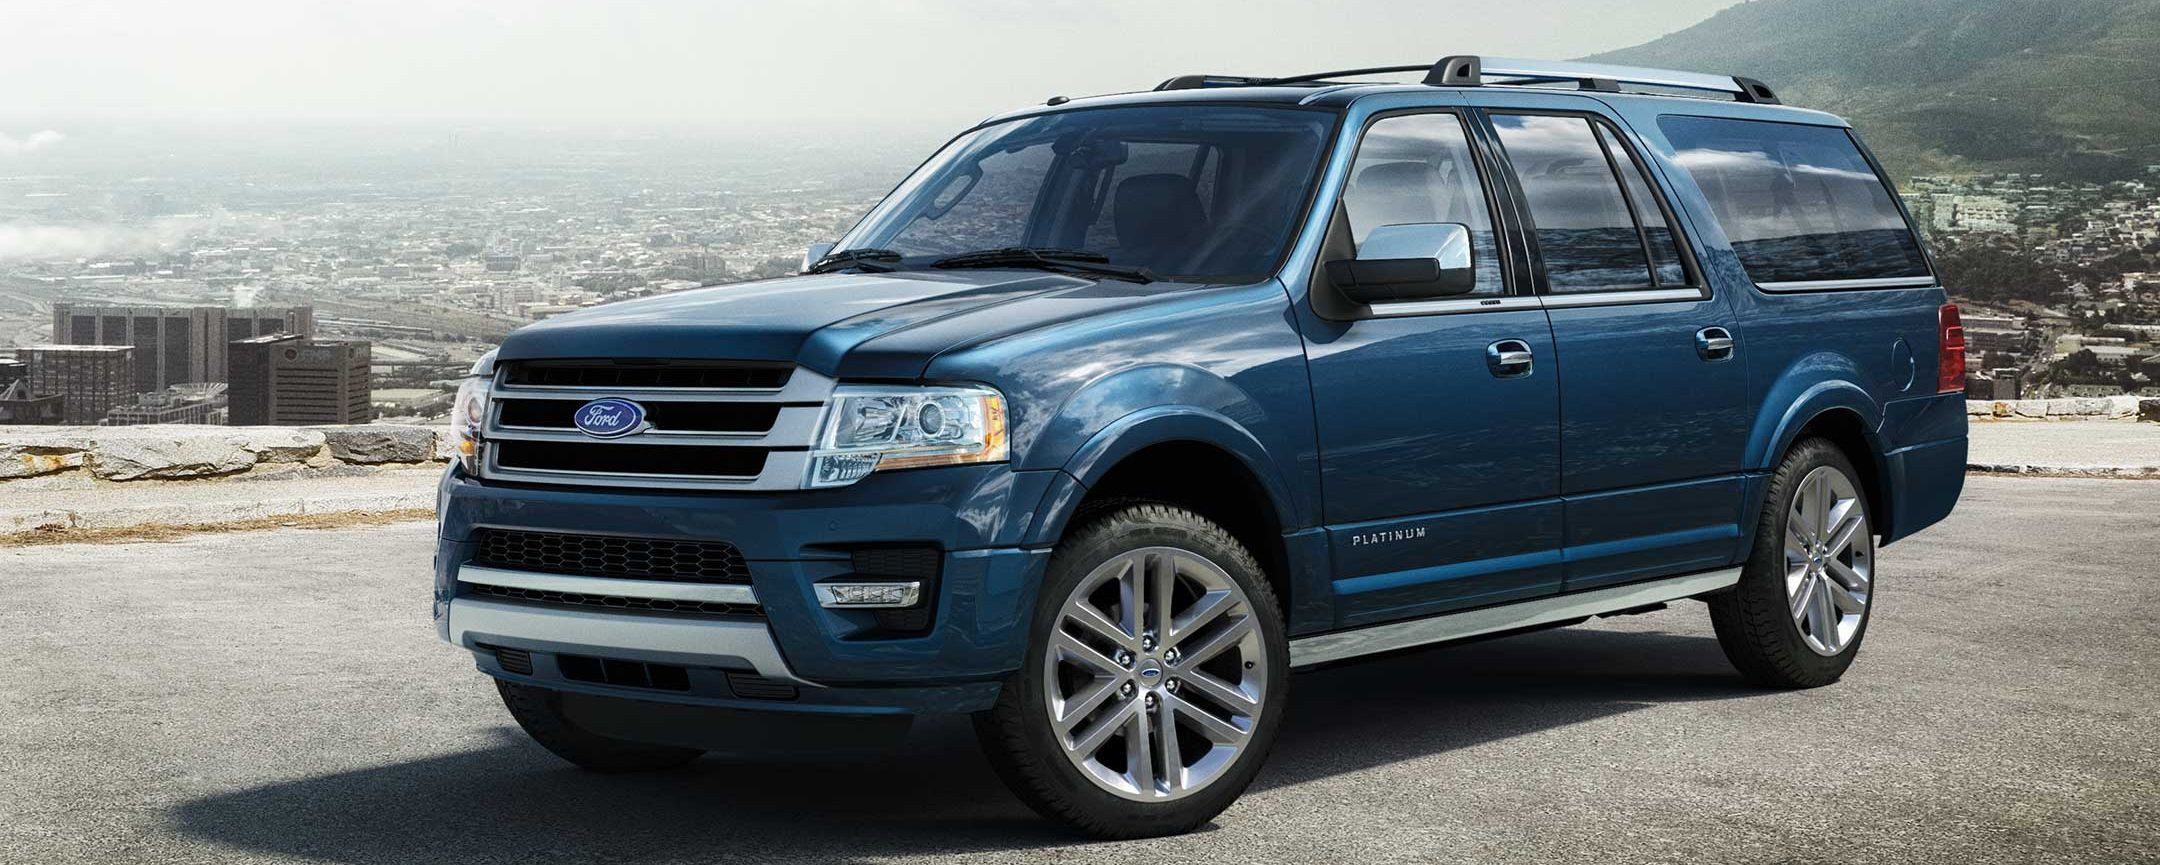 Ford Expedition El For Sale Near Oklahoma City Ok